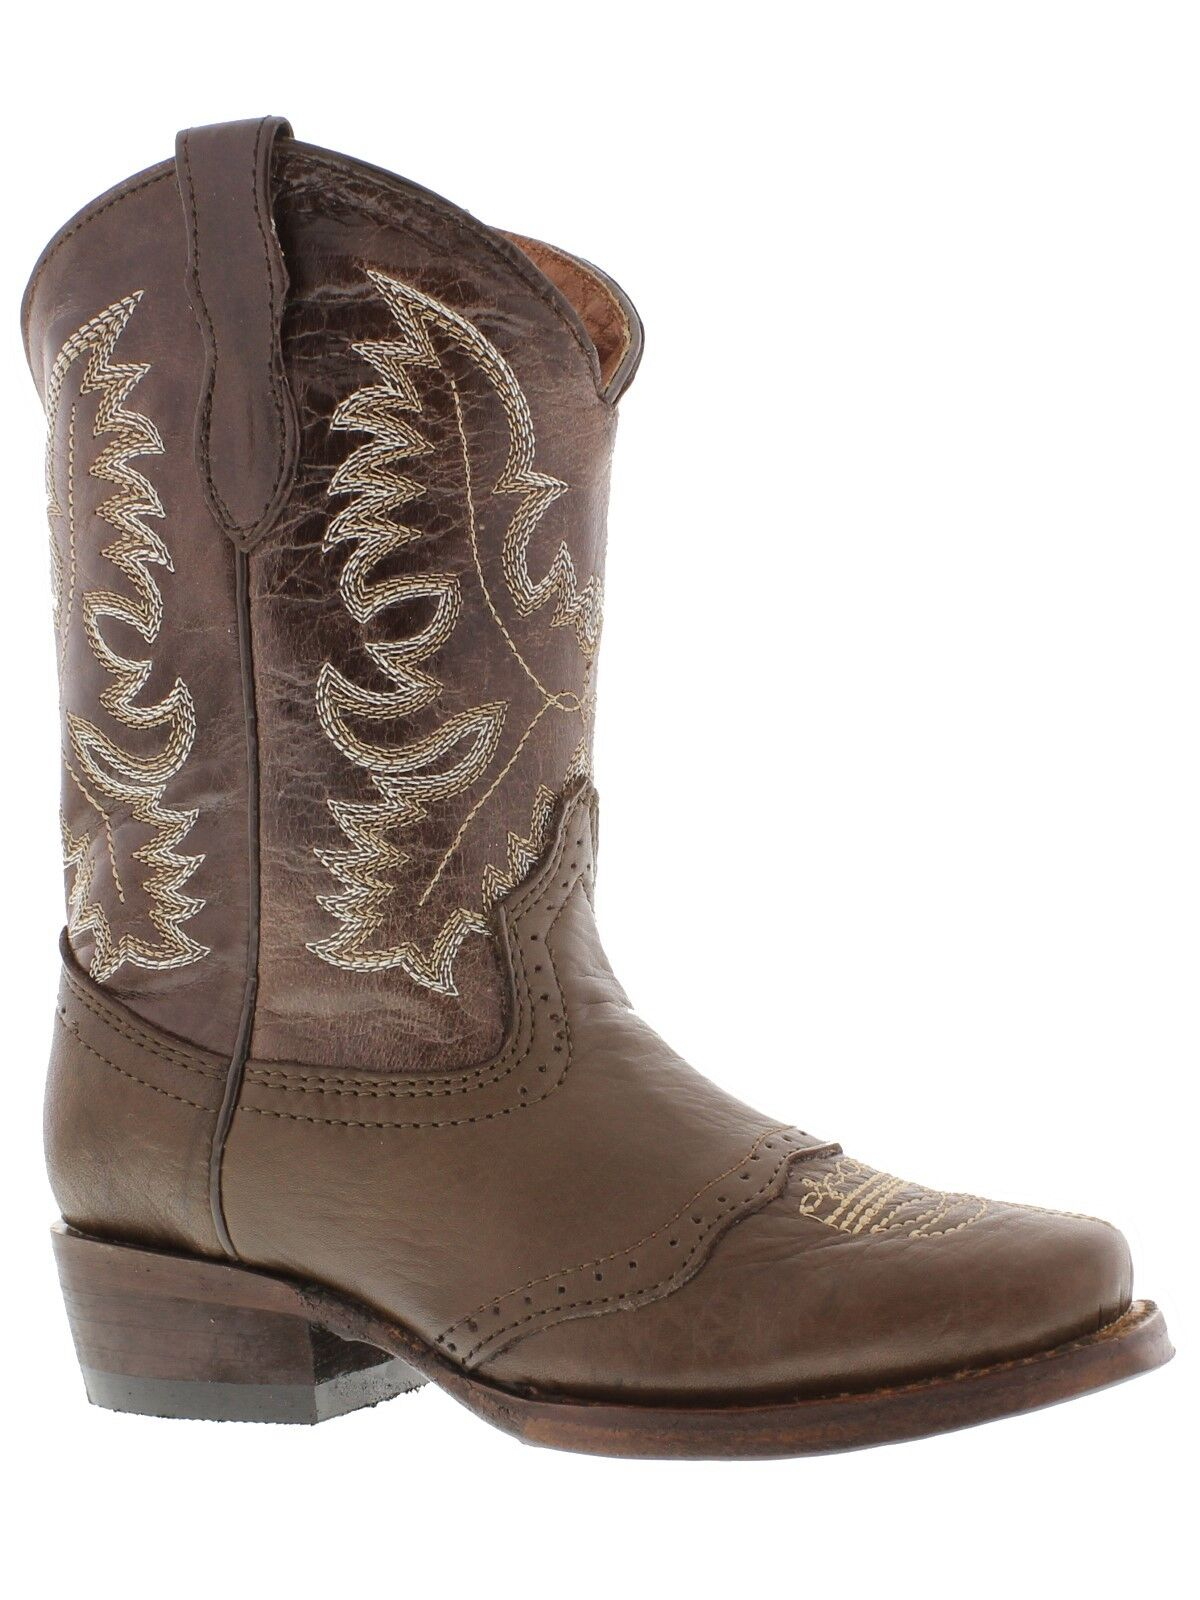 Veretta Childrens Brown Saddle Cowboy Boots Youth Boys Western Rodeo Square Toe 1